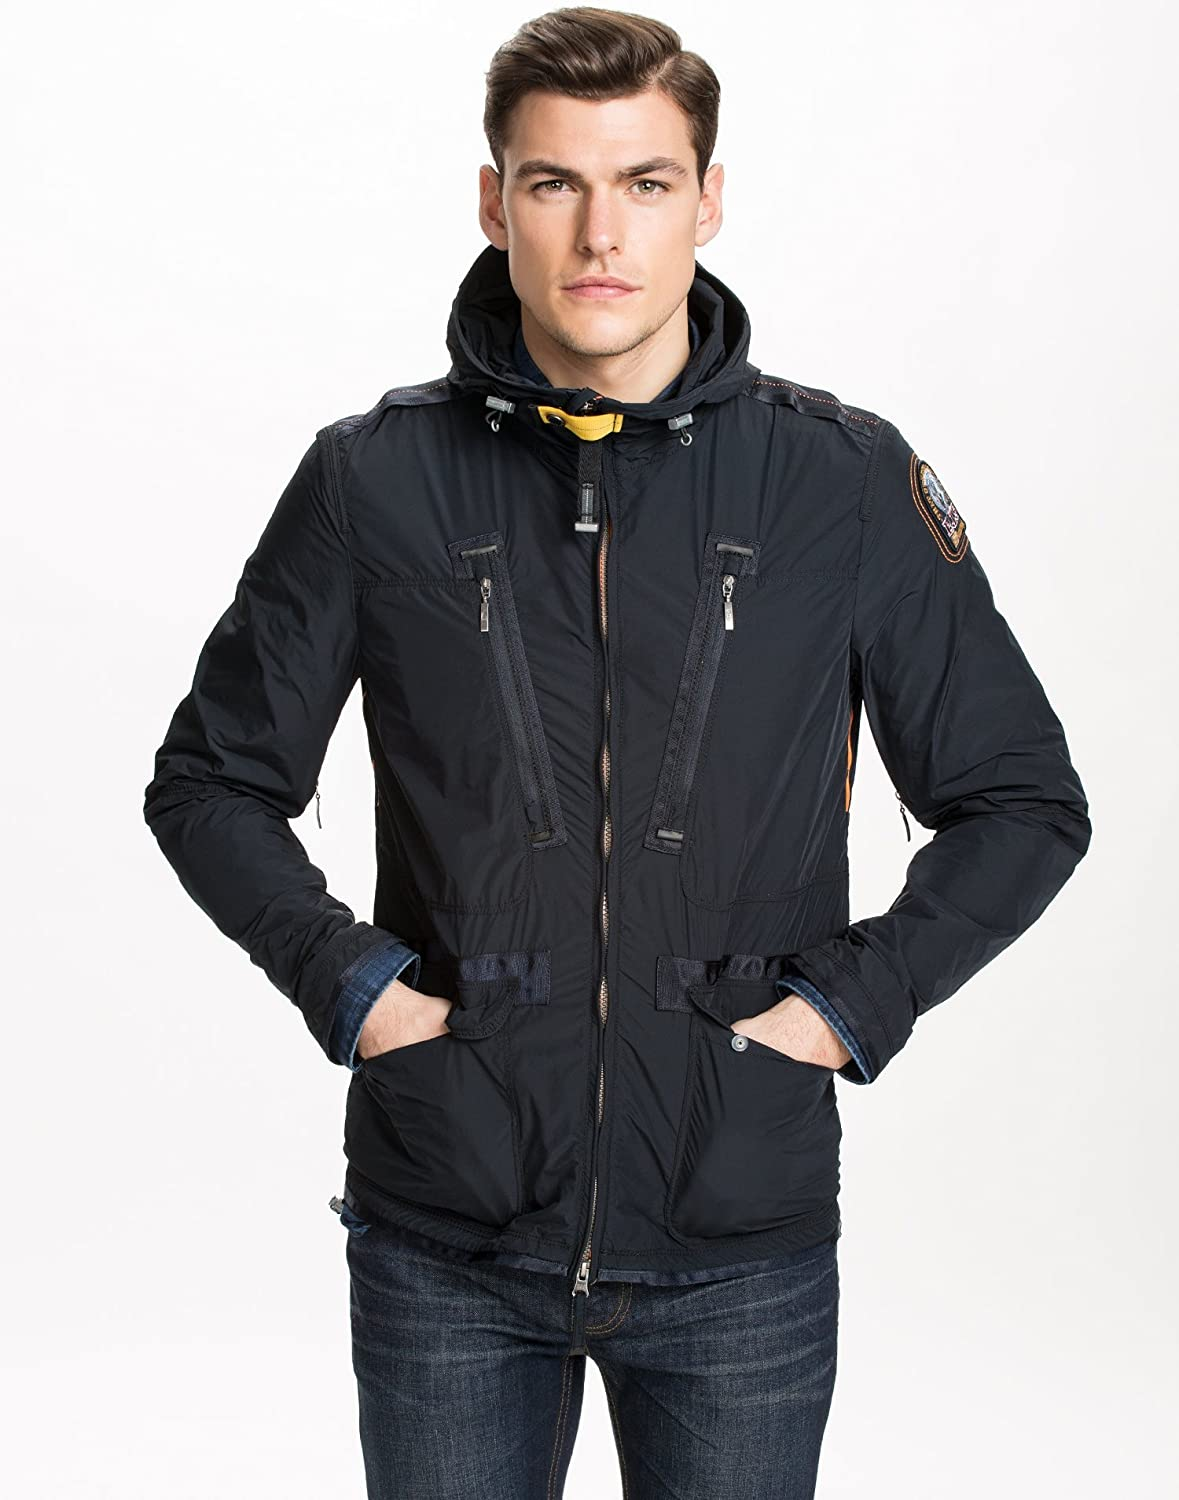 parajumpers echo flyweight jacket blue/black